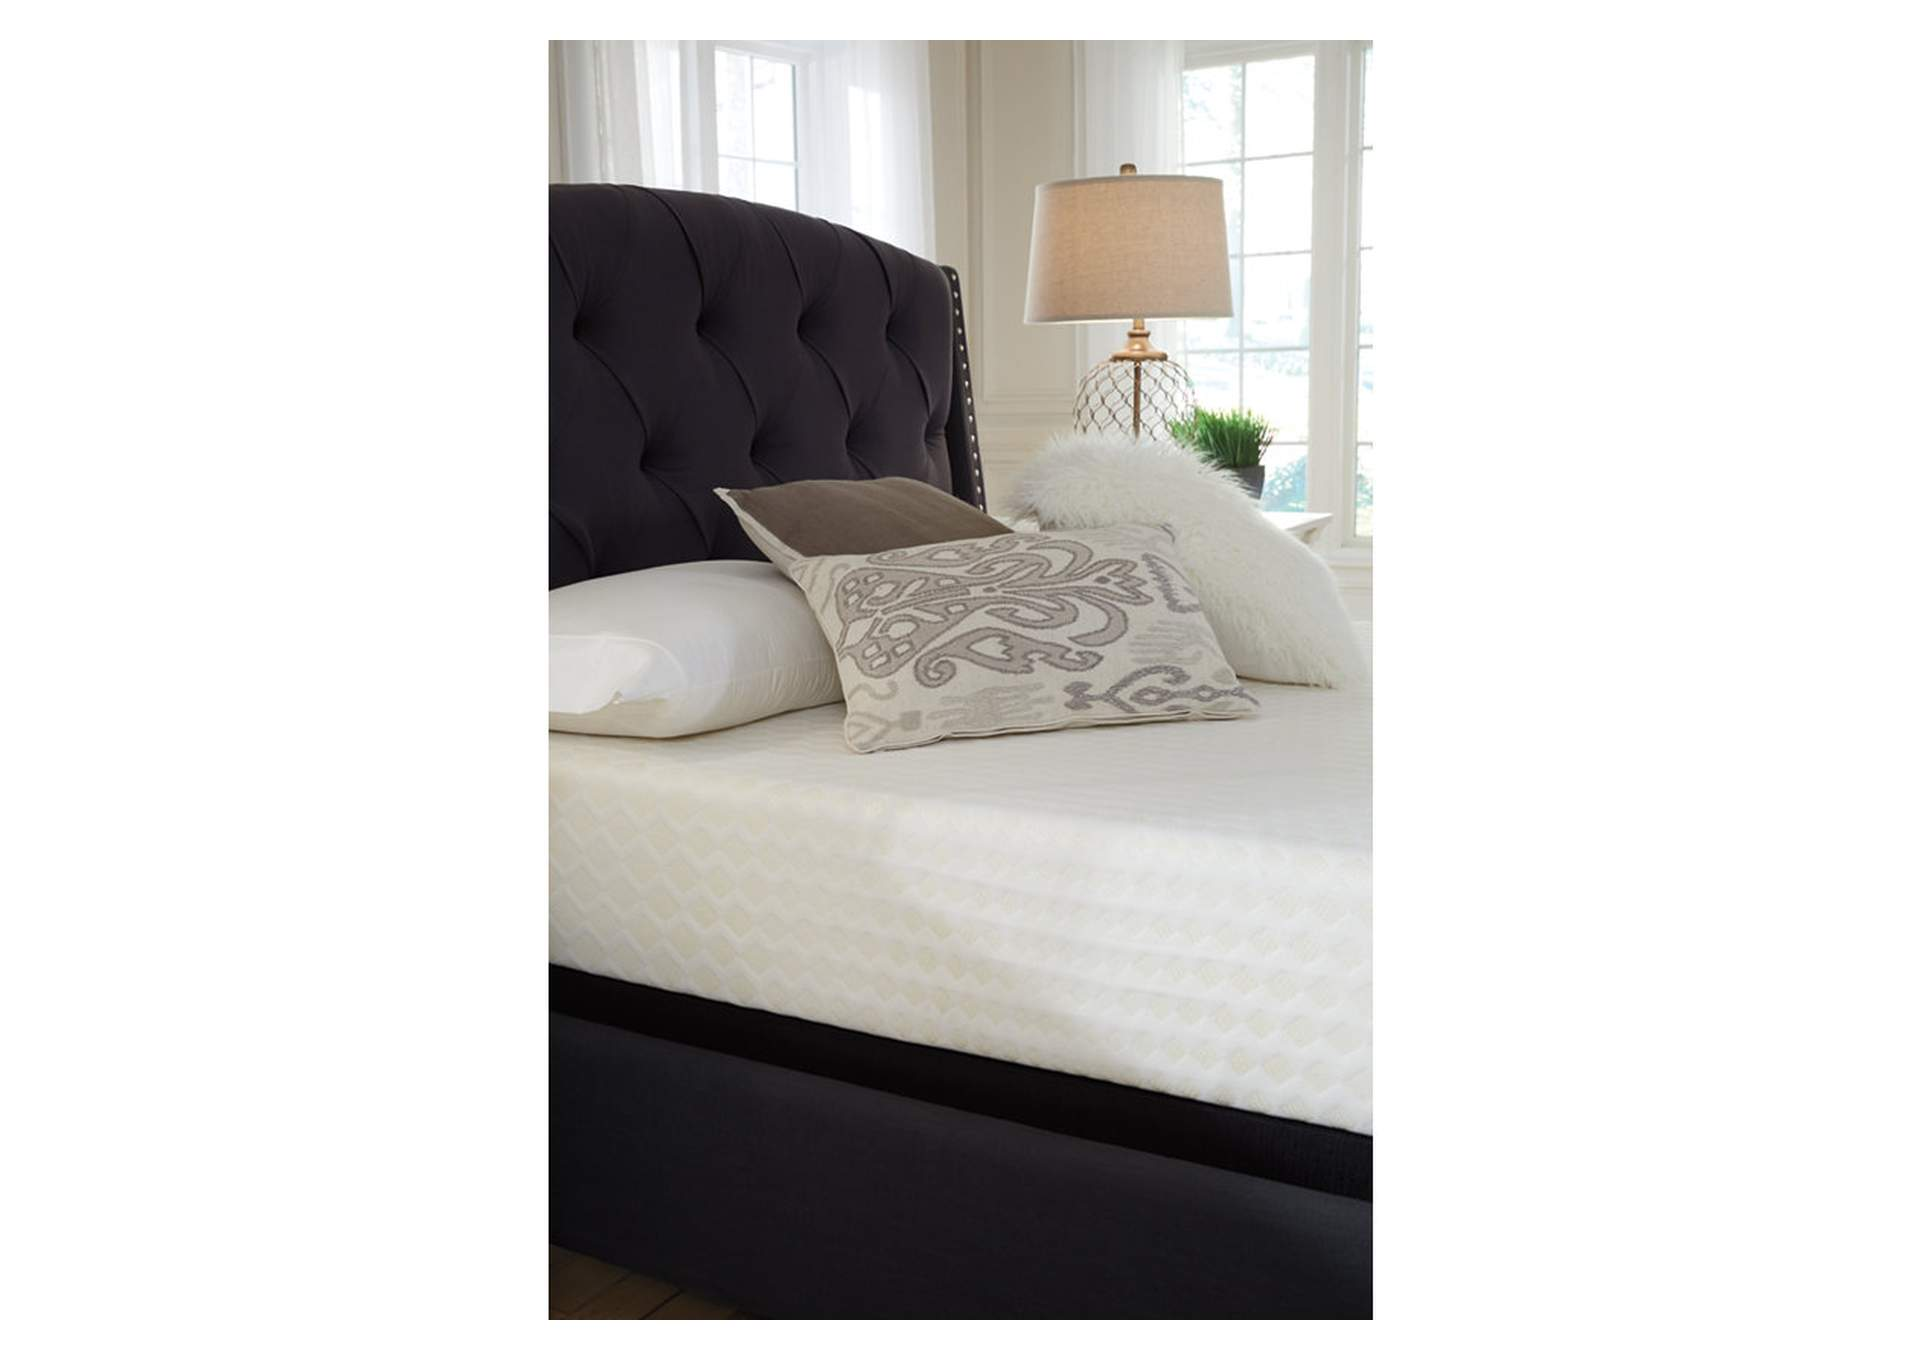 "Chime 10"" Memory Foam King Mattress,Sierra Sleep by Ashley"